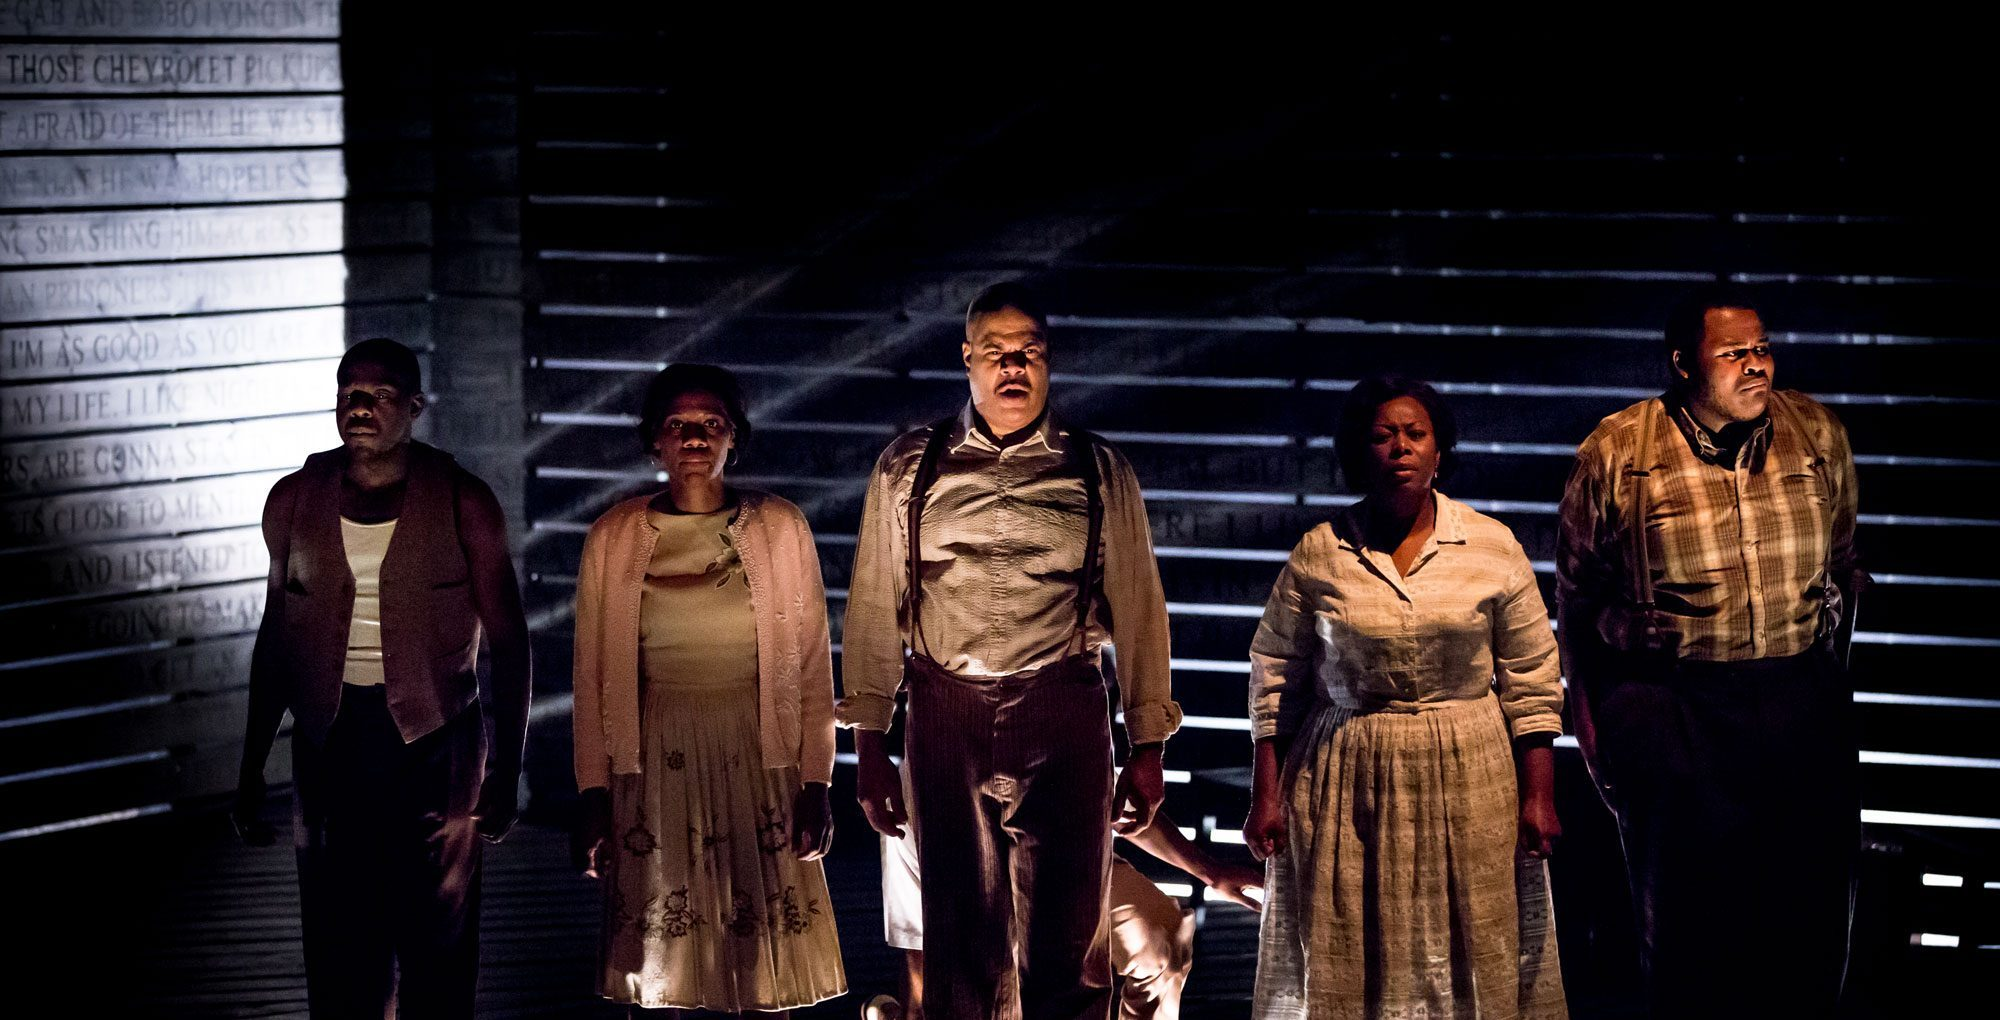 Penumbra Theatre, The Ballad of Emmett Till, By Ifa Bayeza